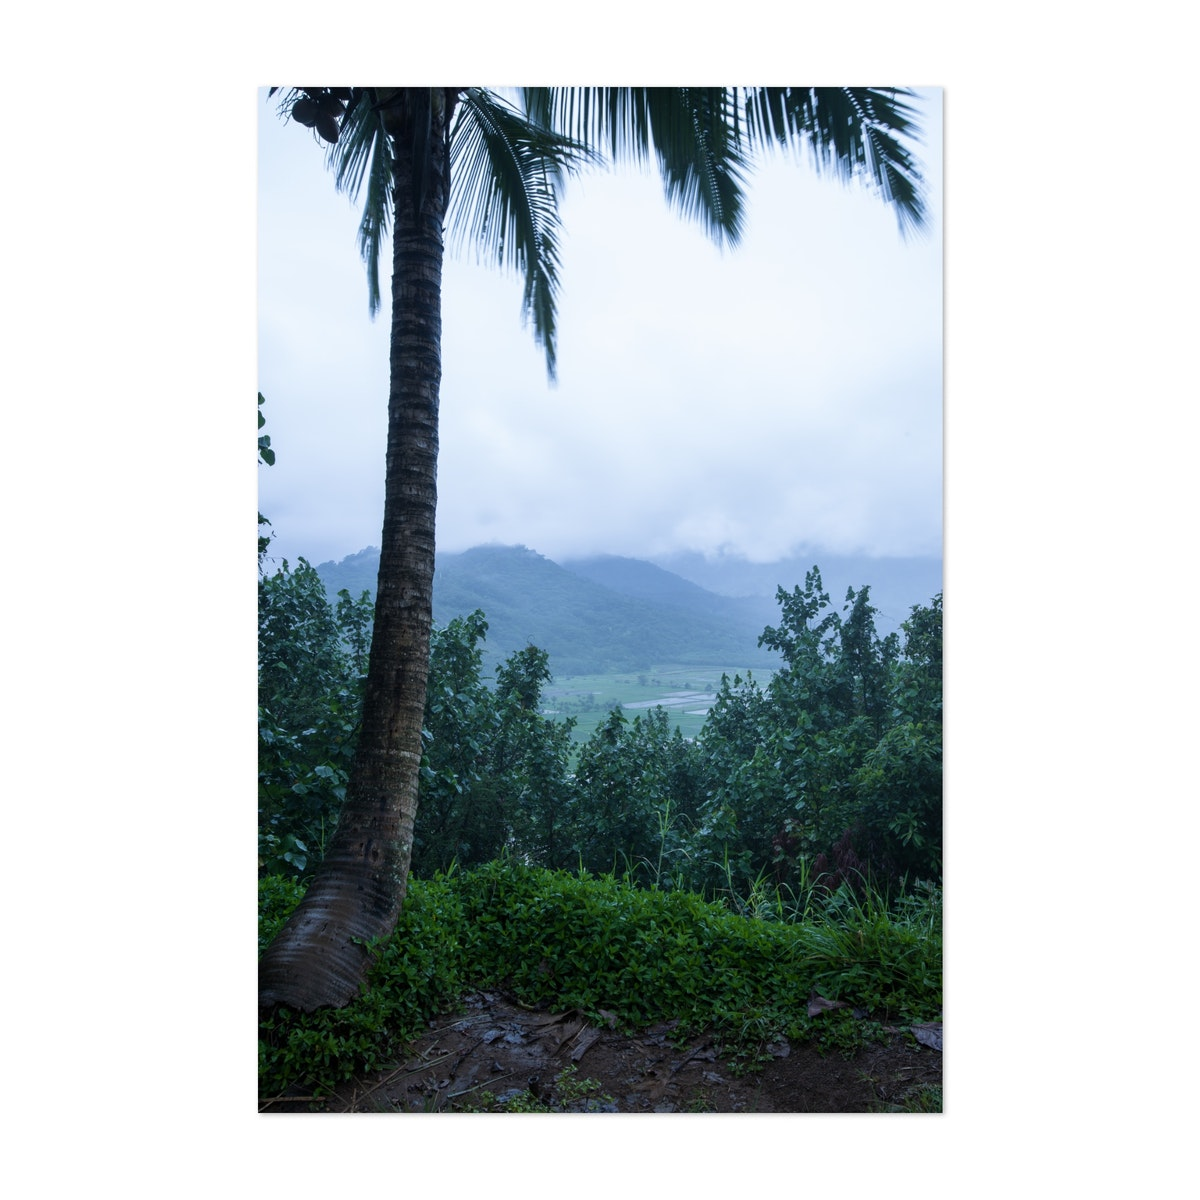 Kaua'i in the Rain